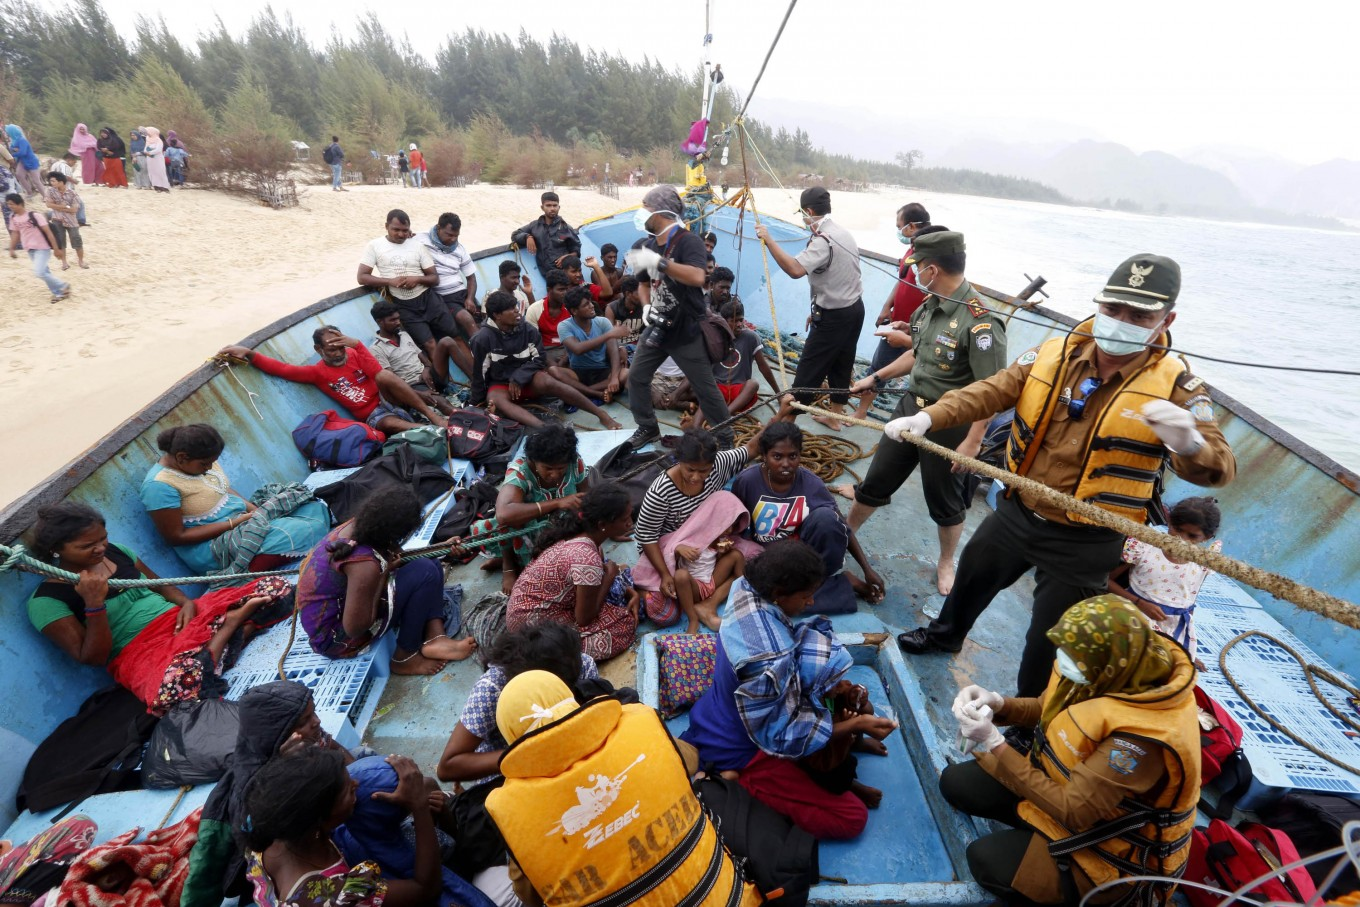 NGO calls for govt to help Tamil asylum seekers stranded in Aceh